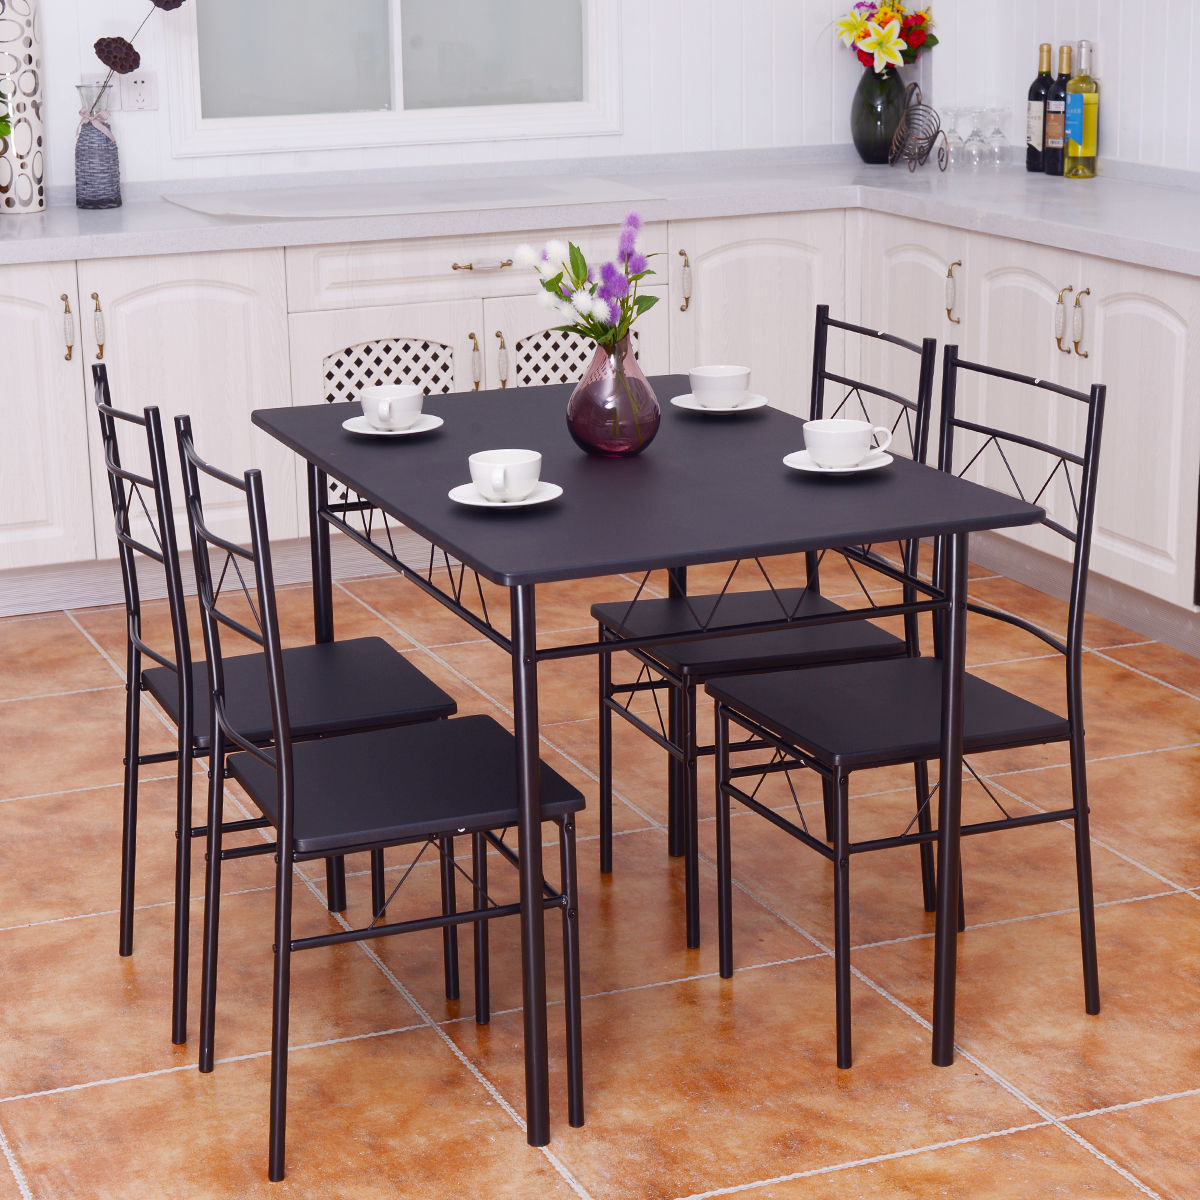 Kitchen Chairs Wood Costway 5 Piece Dining Table Set 4 Chairs Wood Metal Kitchen Breakfast Furniture Black